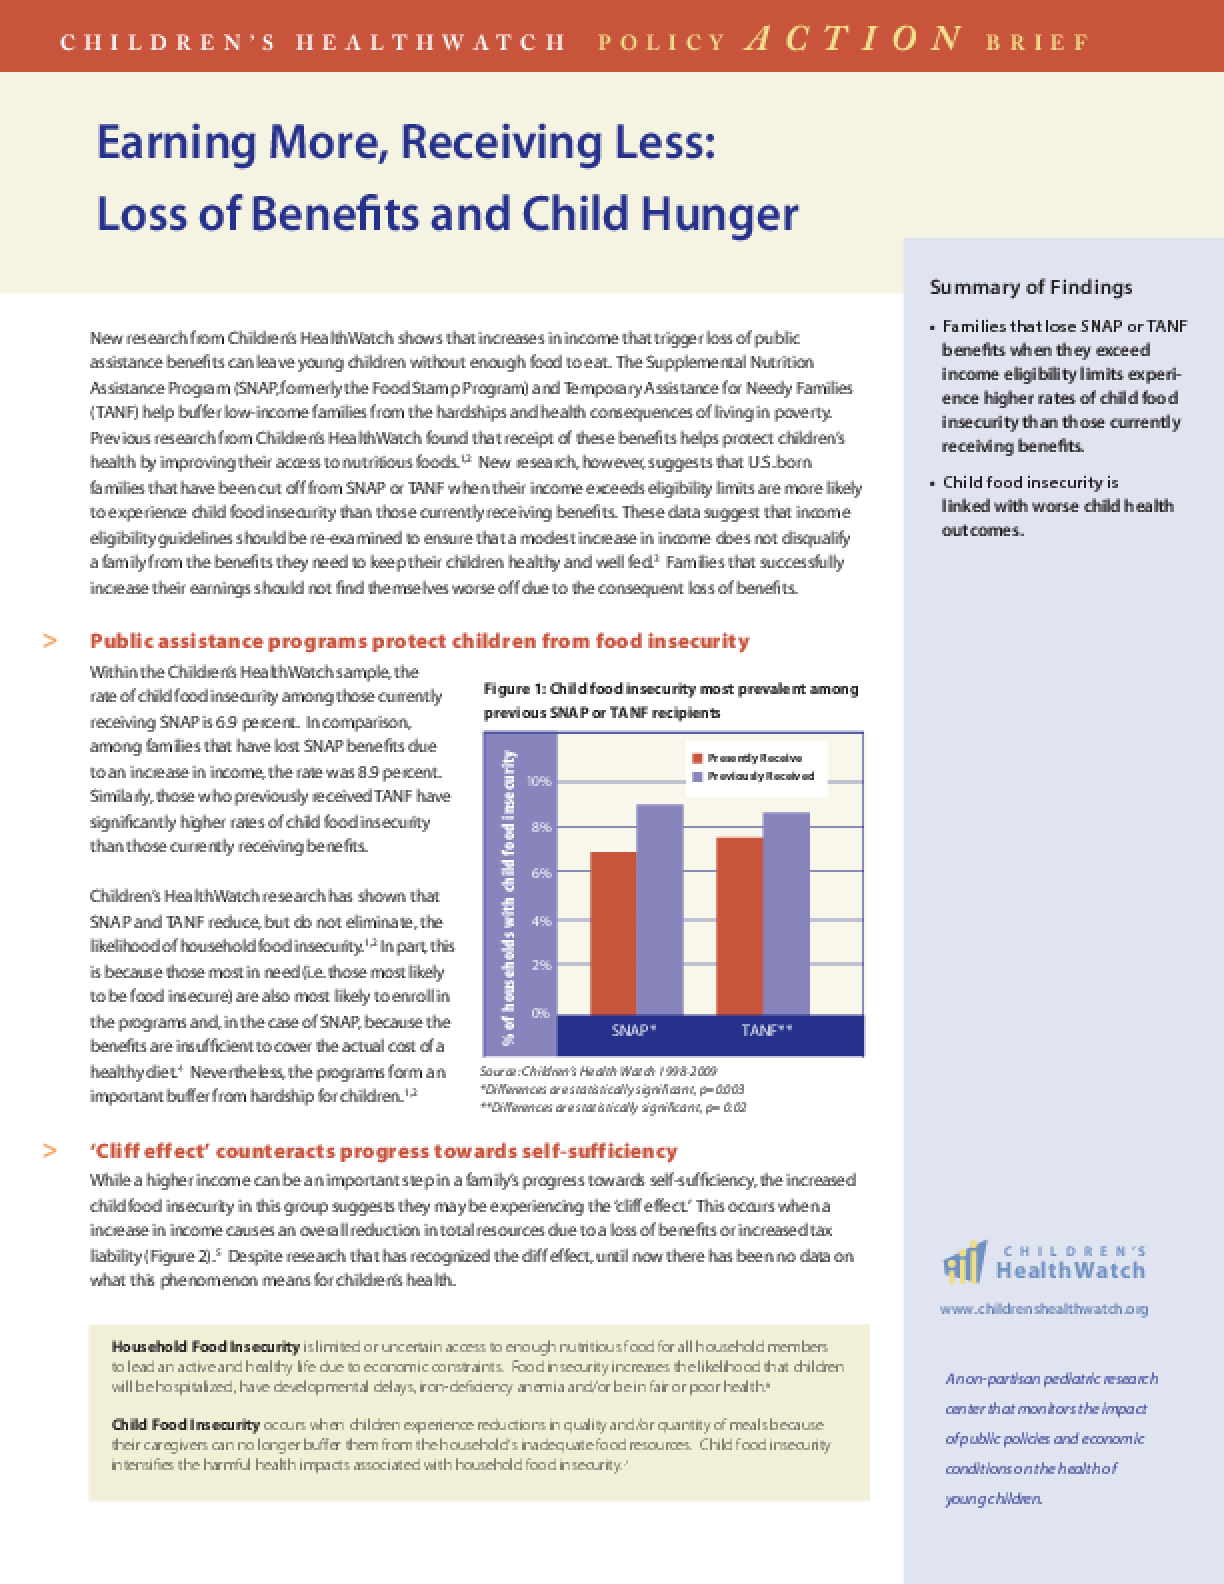 Earning More, Receiving Less: Loss of Benefits and Child Hunger